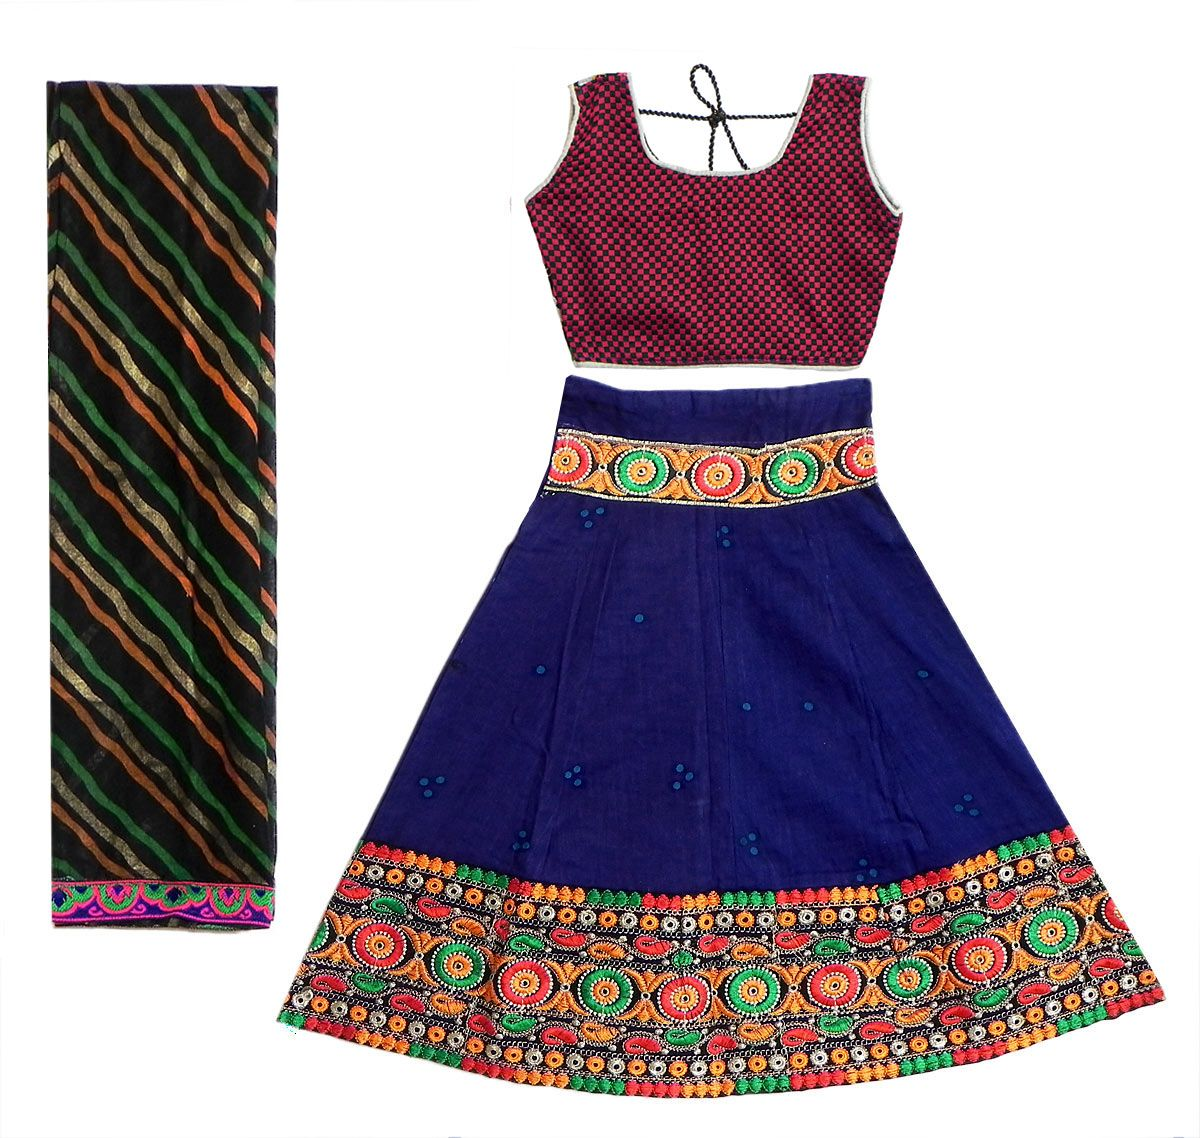 Cotton Blue Ghagra, Red with Black Choli and Chunni (Cotton Cloth)